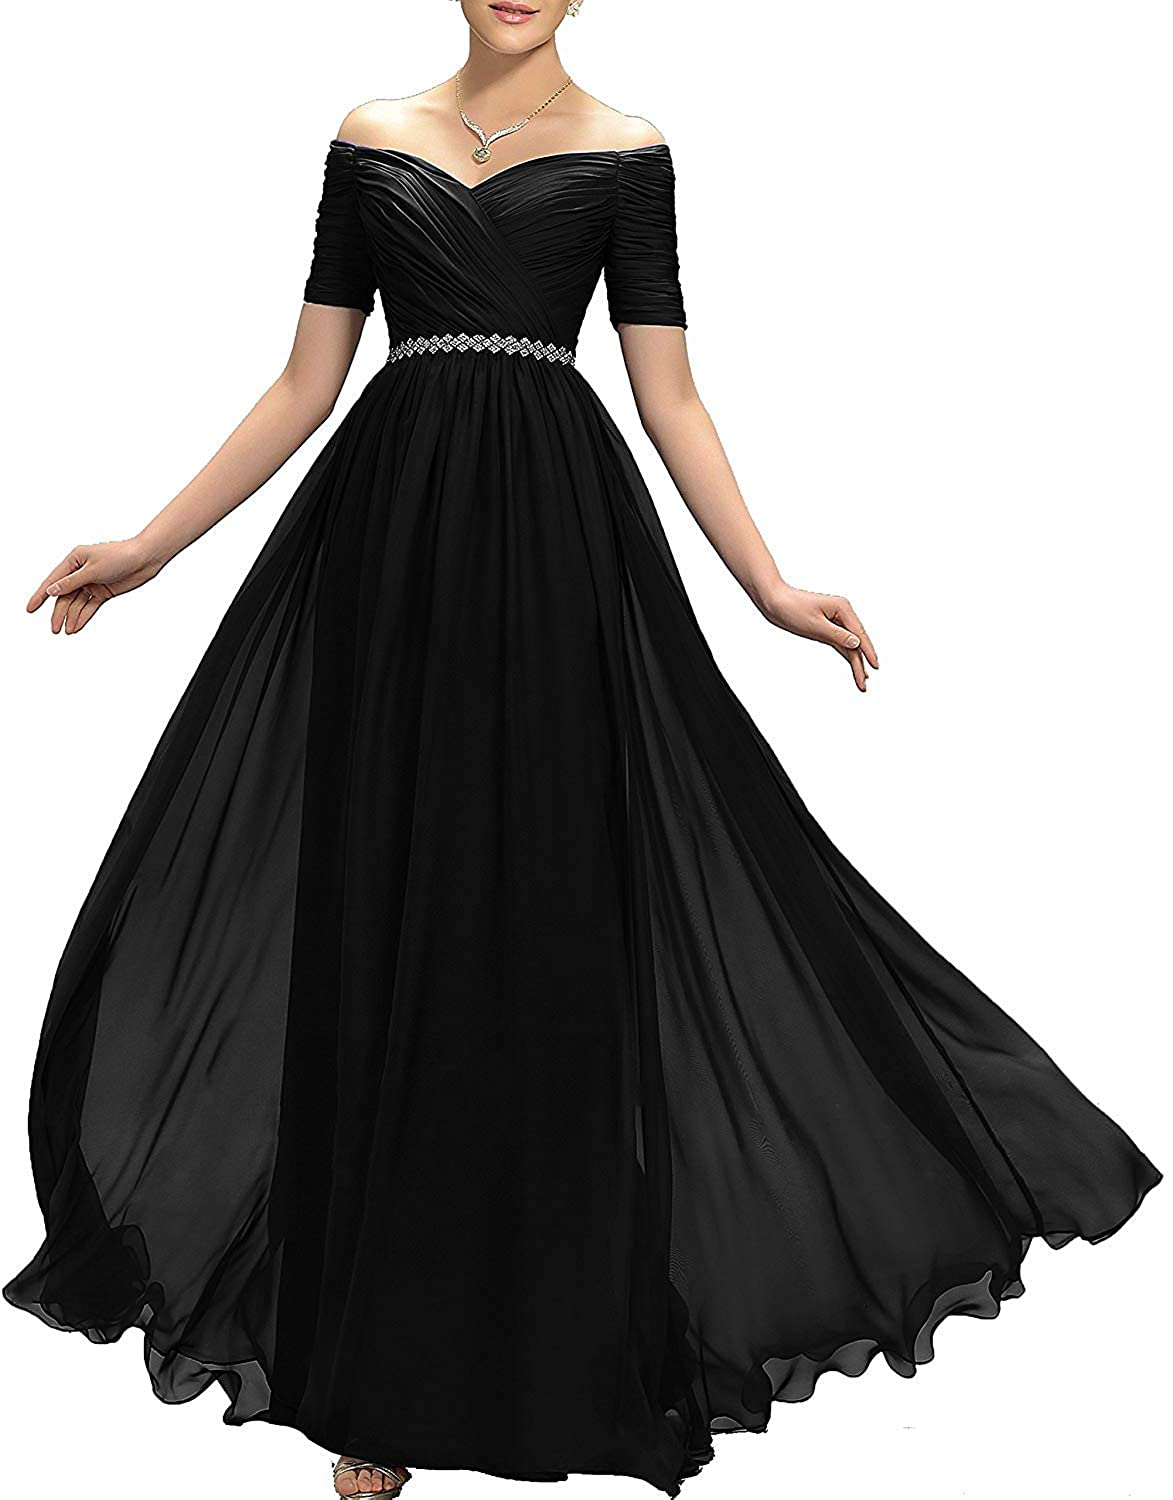 Black Womens Beaded Off Shoulder Prom Bridesmaid Dresses Maxi Formal Evening Ball Gowns